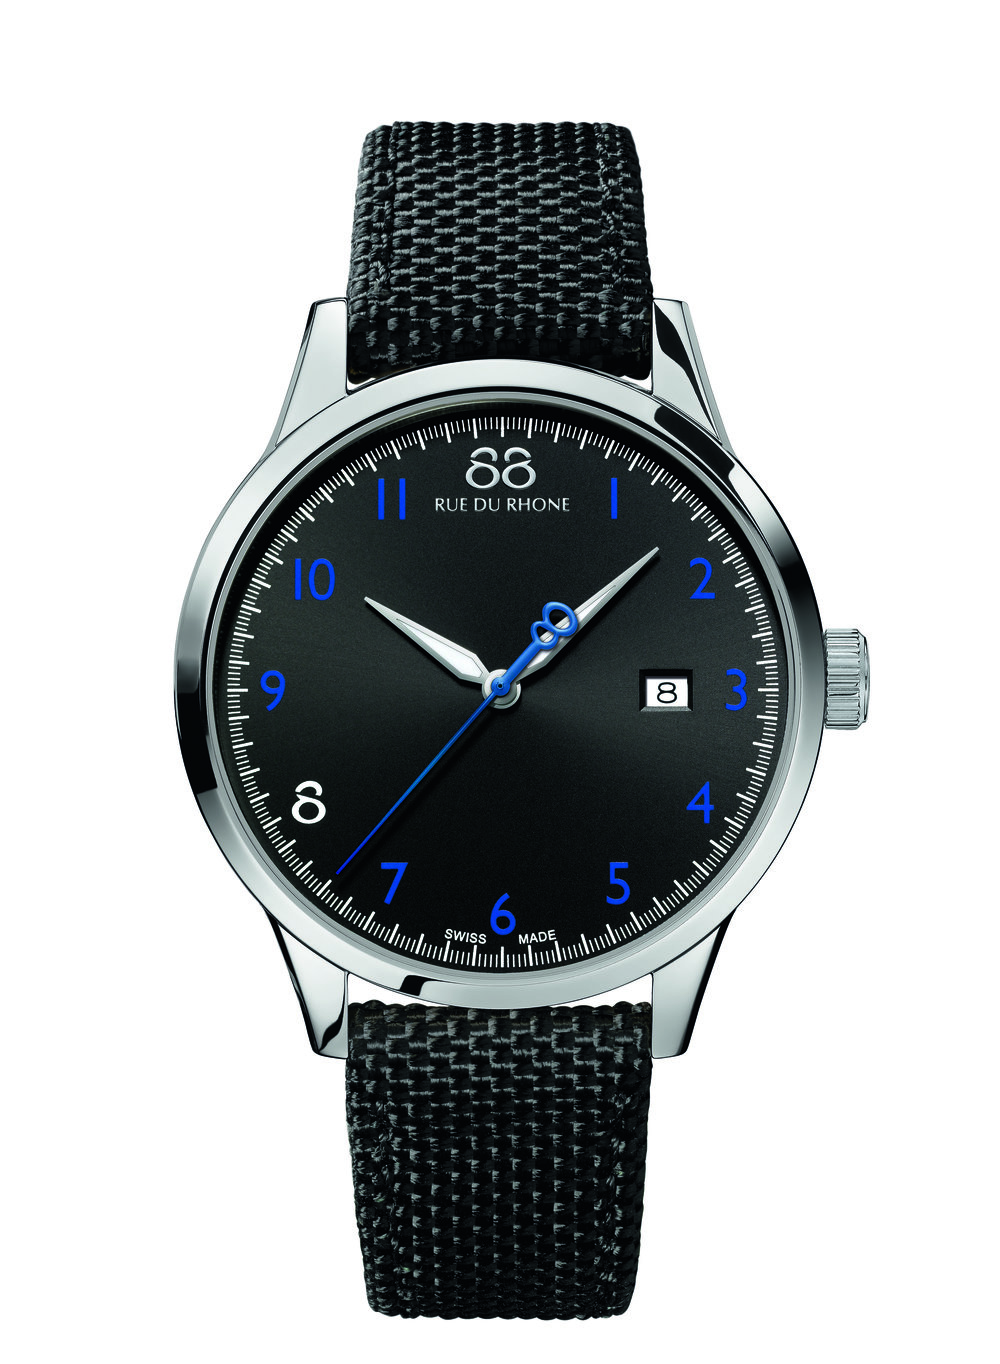 Rive - 41 MM Quartz This watch is a mix classic but modernity. Its black dial and 11 blue numerals shine. The perfect accessory to make your look smart!